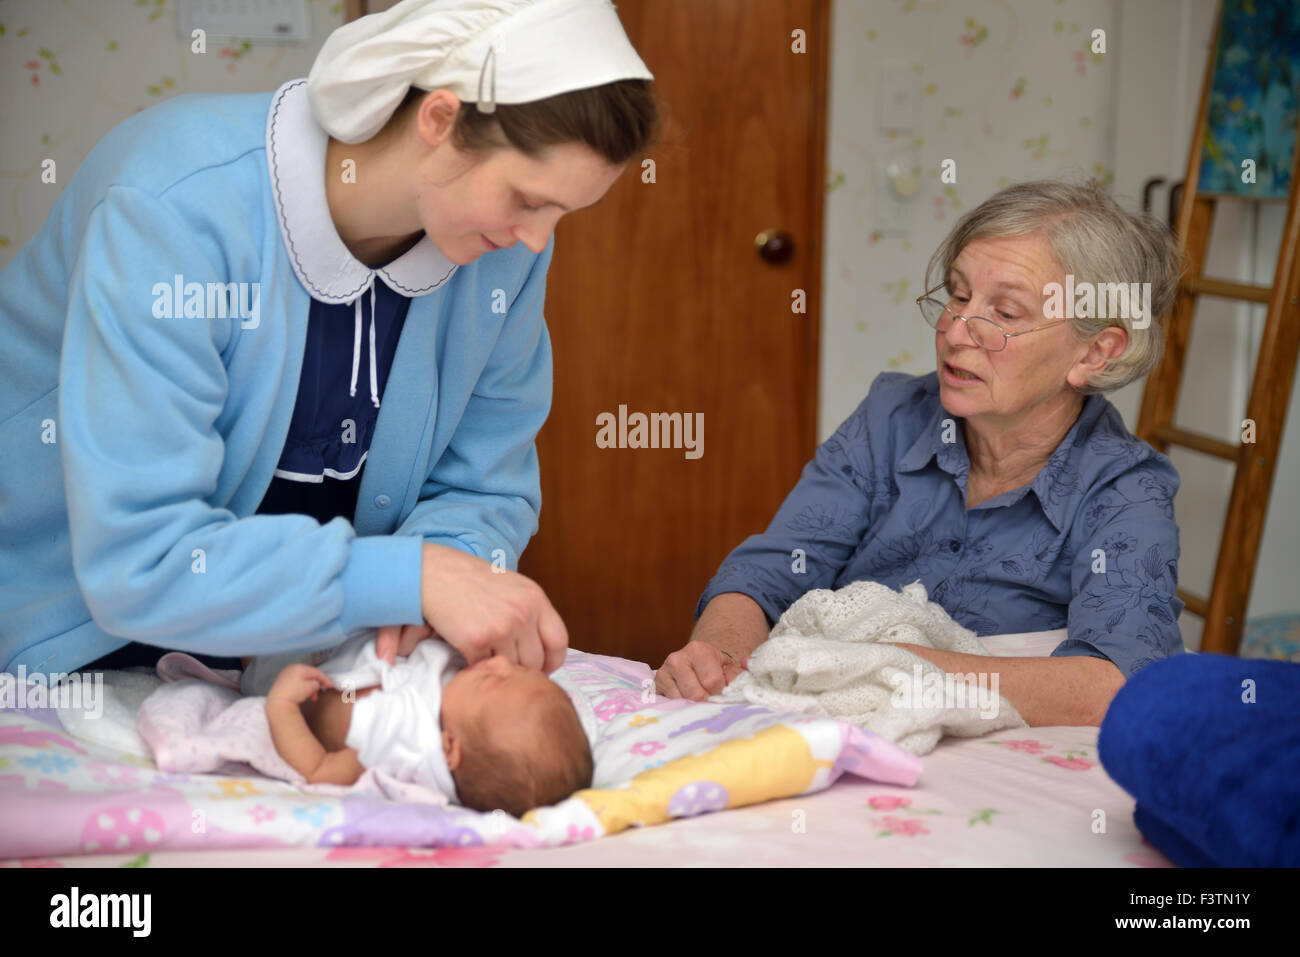 A senior midwife checks a newborn baby with her mother - Stock Image